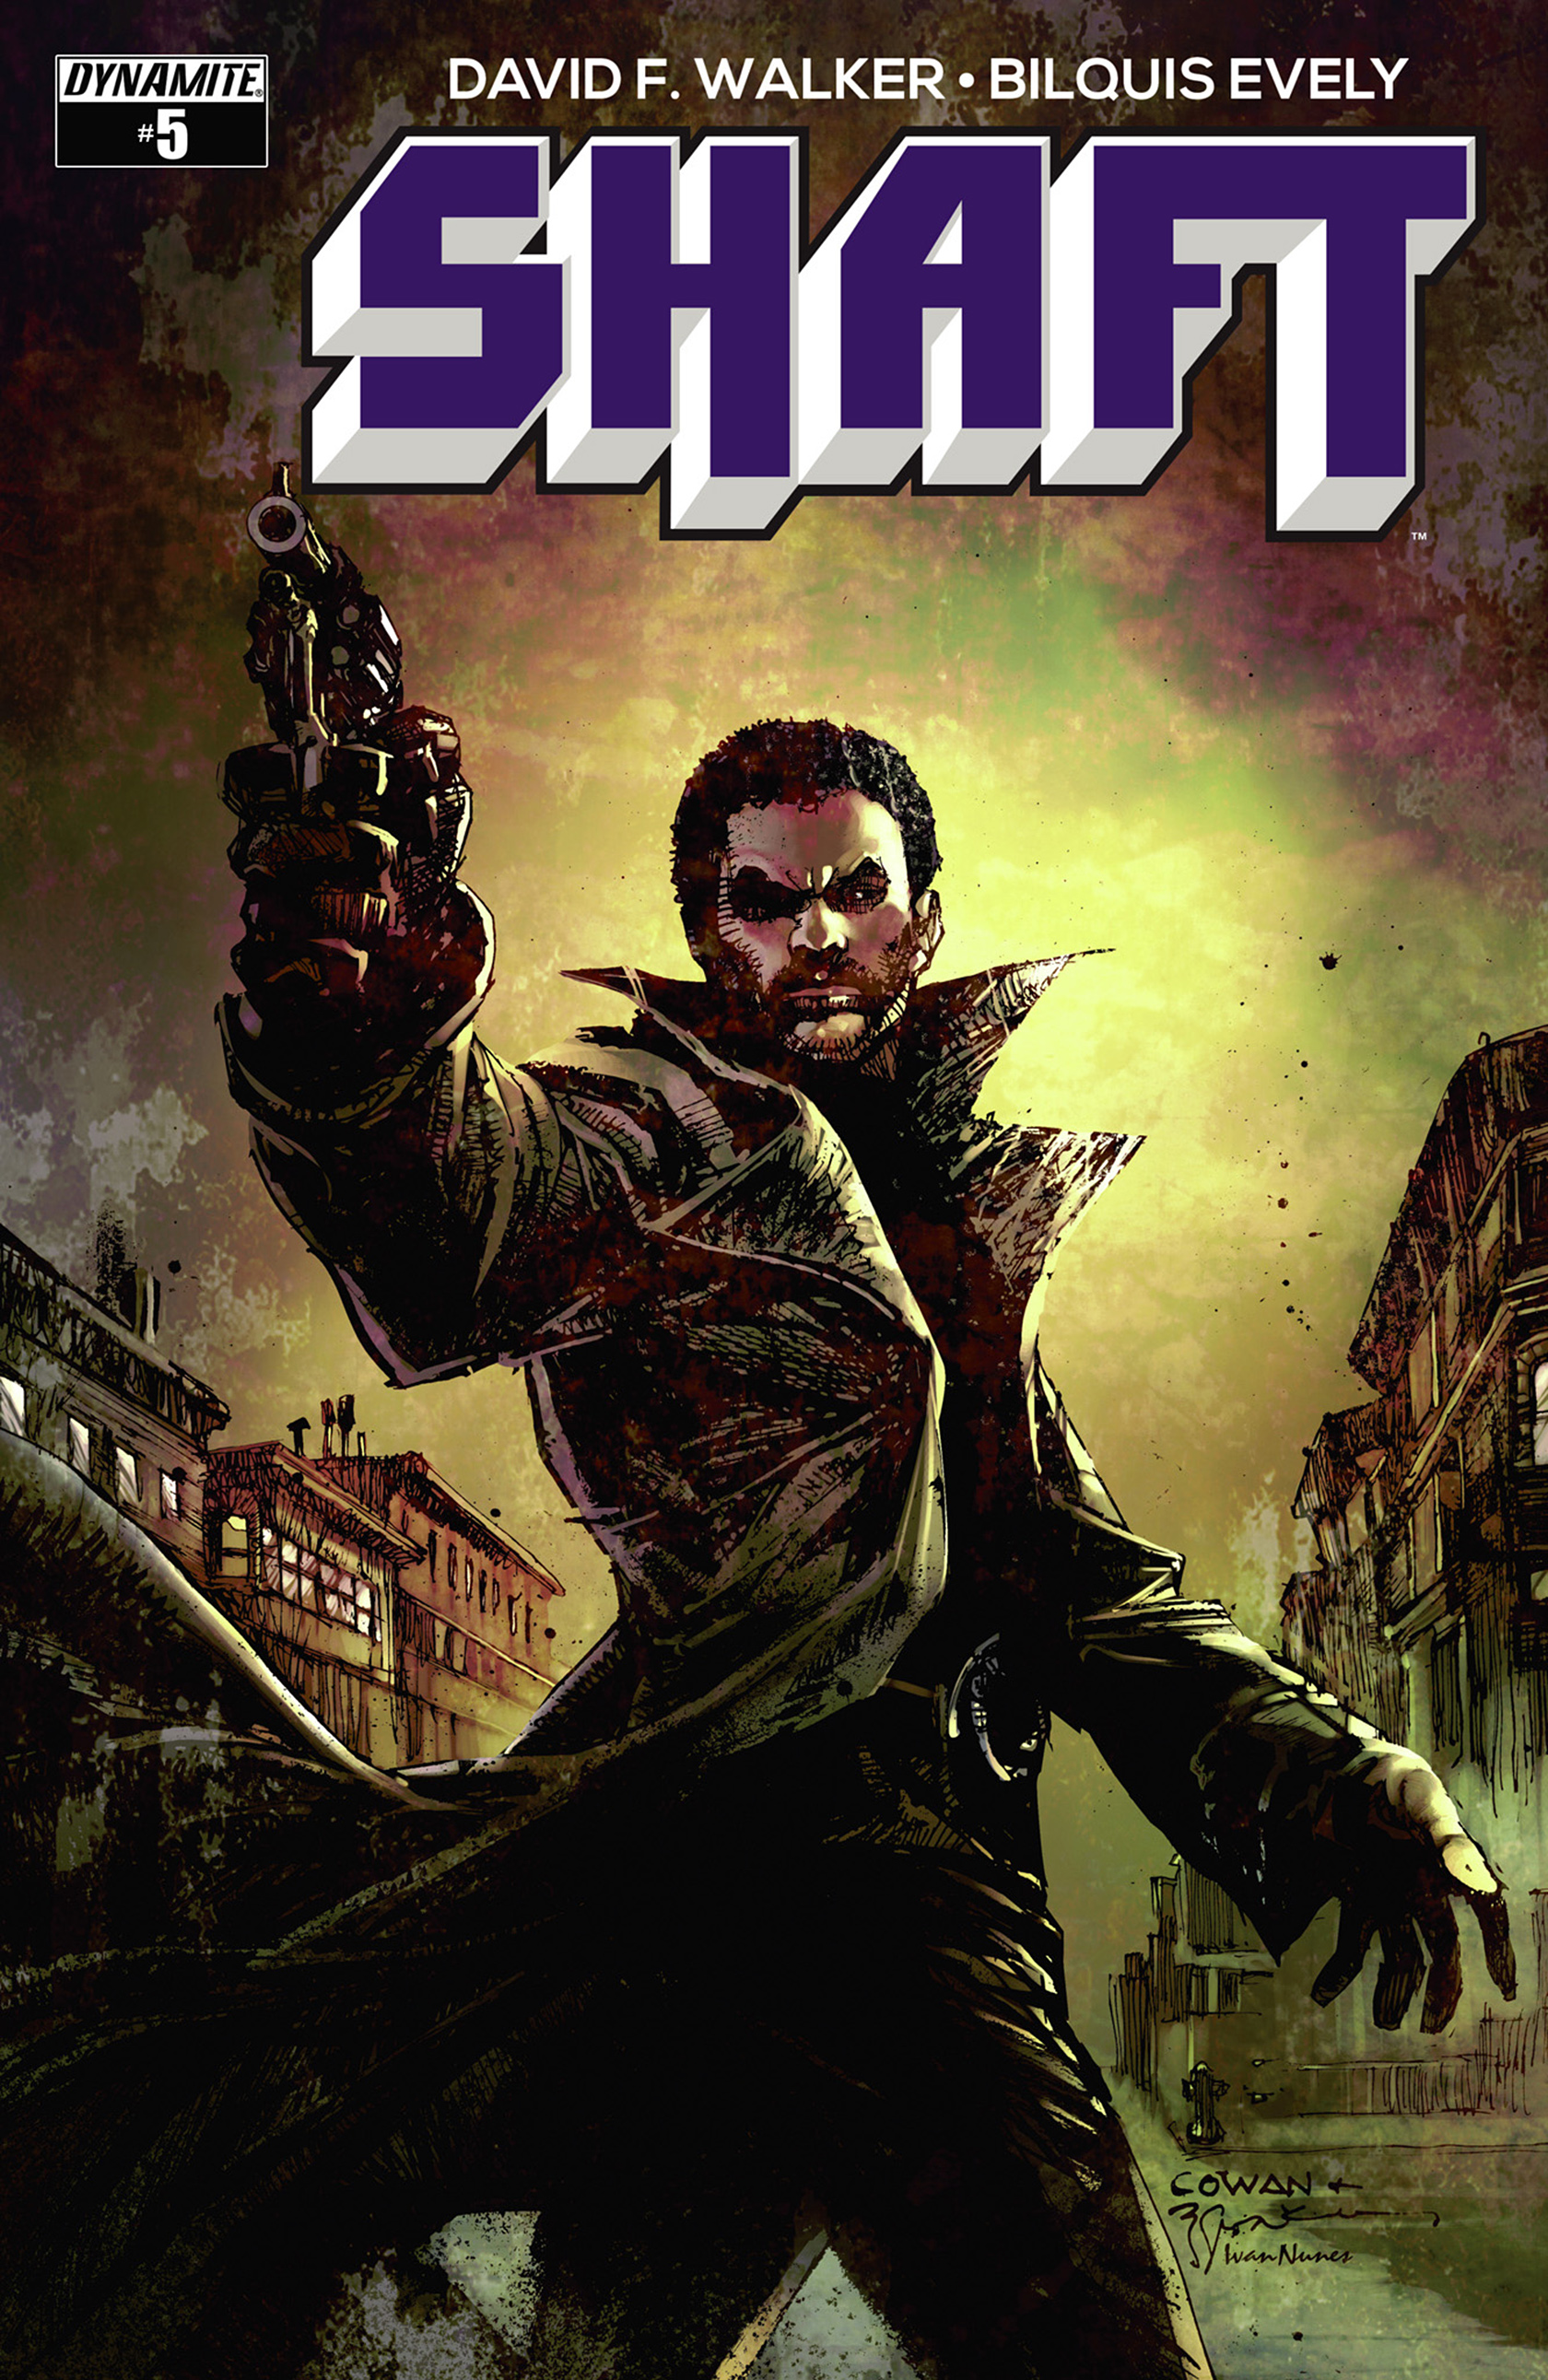 Read online Shaft comic -  Issue #5 - 1